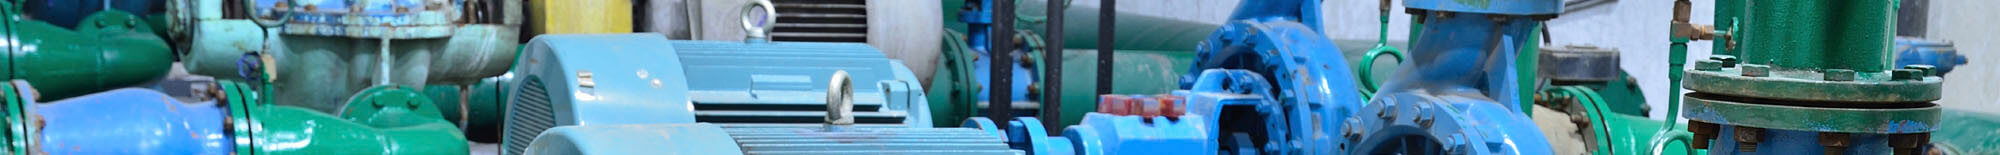 ANSI Centrifugal Pumps | Industrial Pump Repair & Service